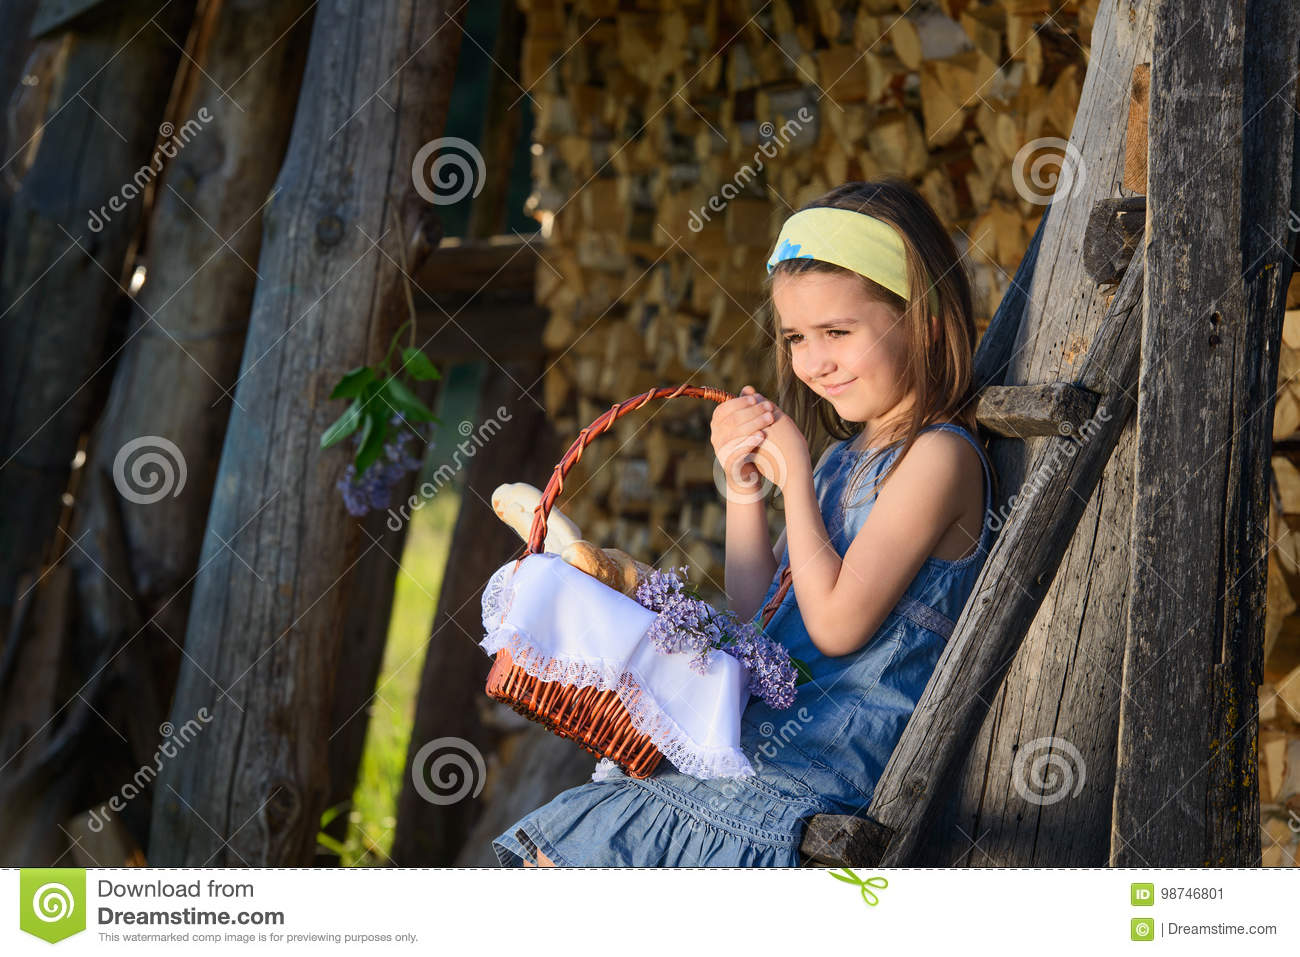 Cute smiling little girl holding a basket of flowers. Portrait in profile.